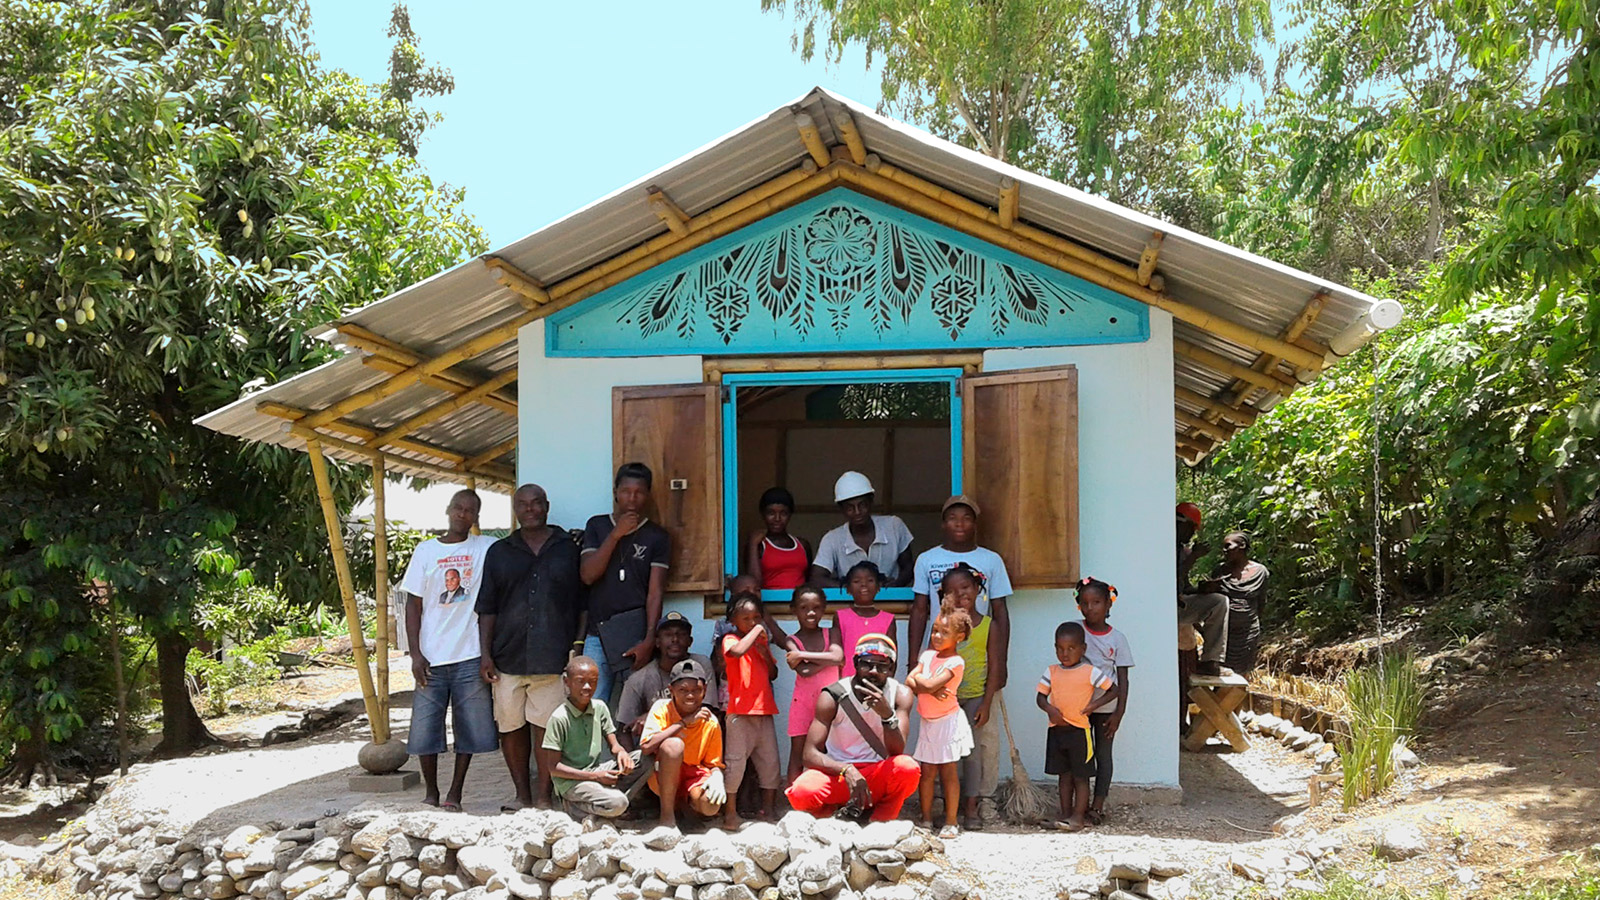 The-home-is-complete!-The-left-wing-of-the-3-part-Bamboo-home-in-Cormiers-Haiti_srgb.jpg